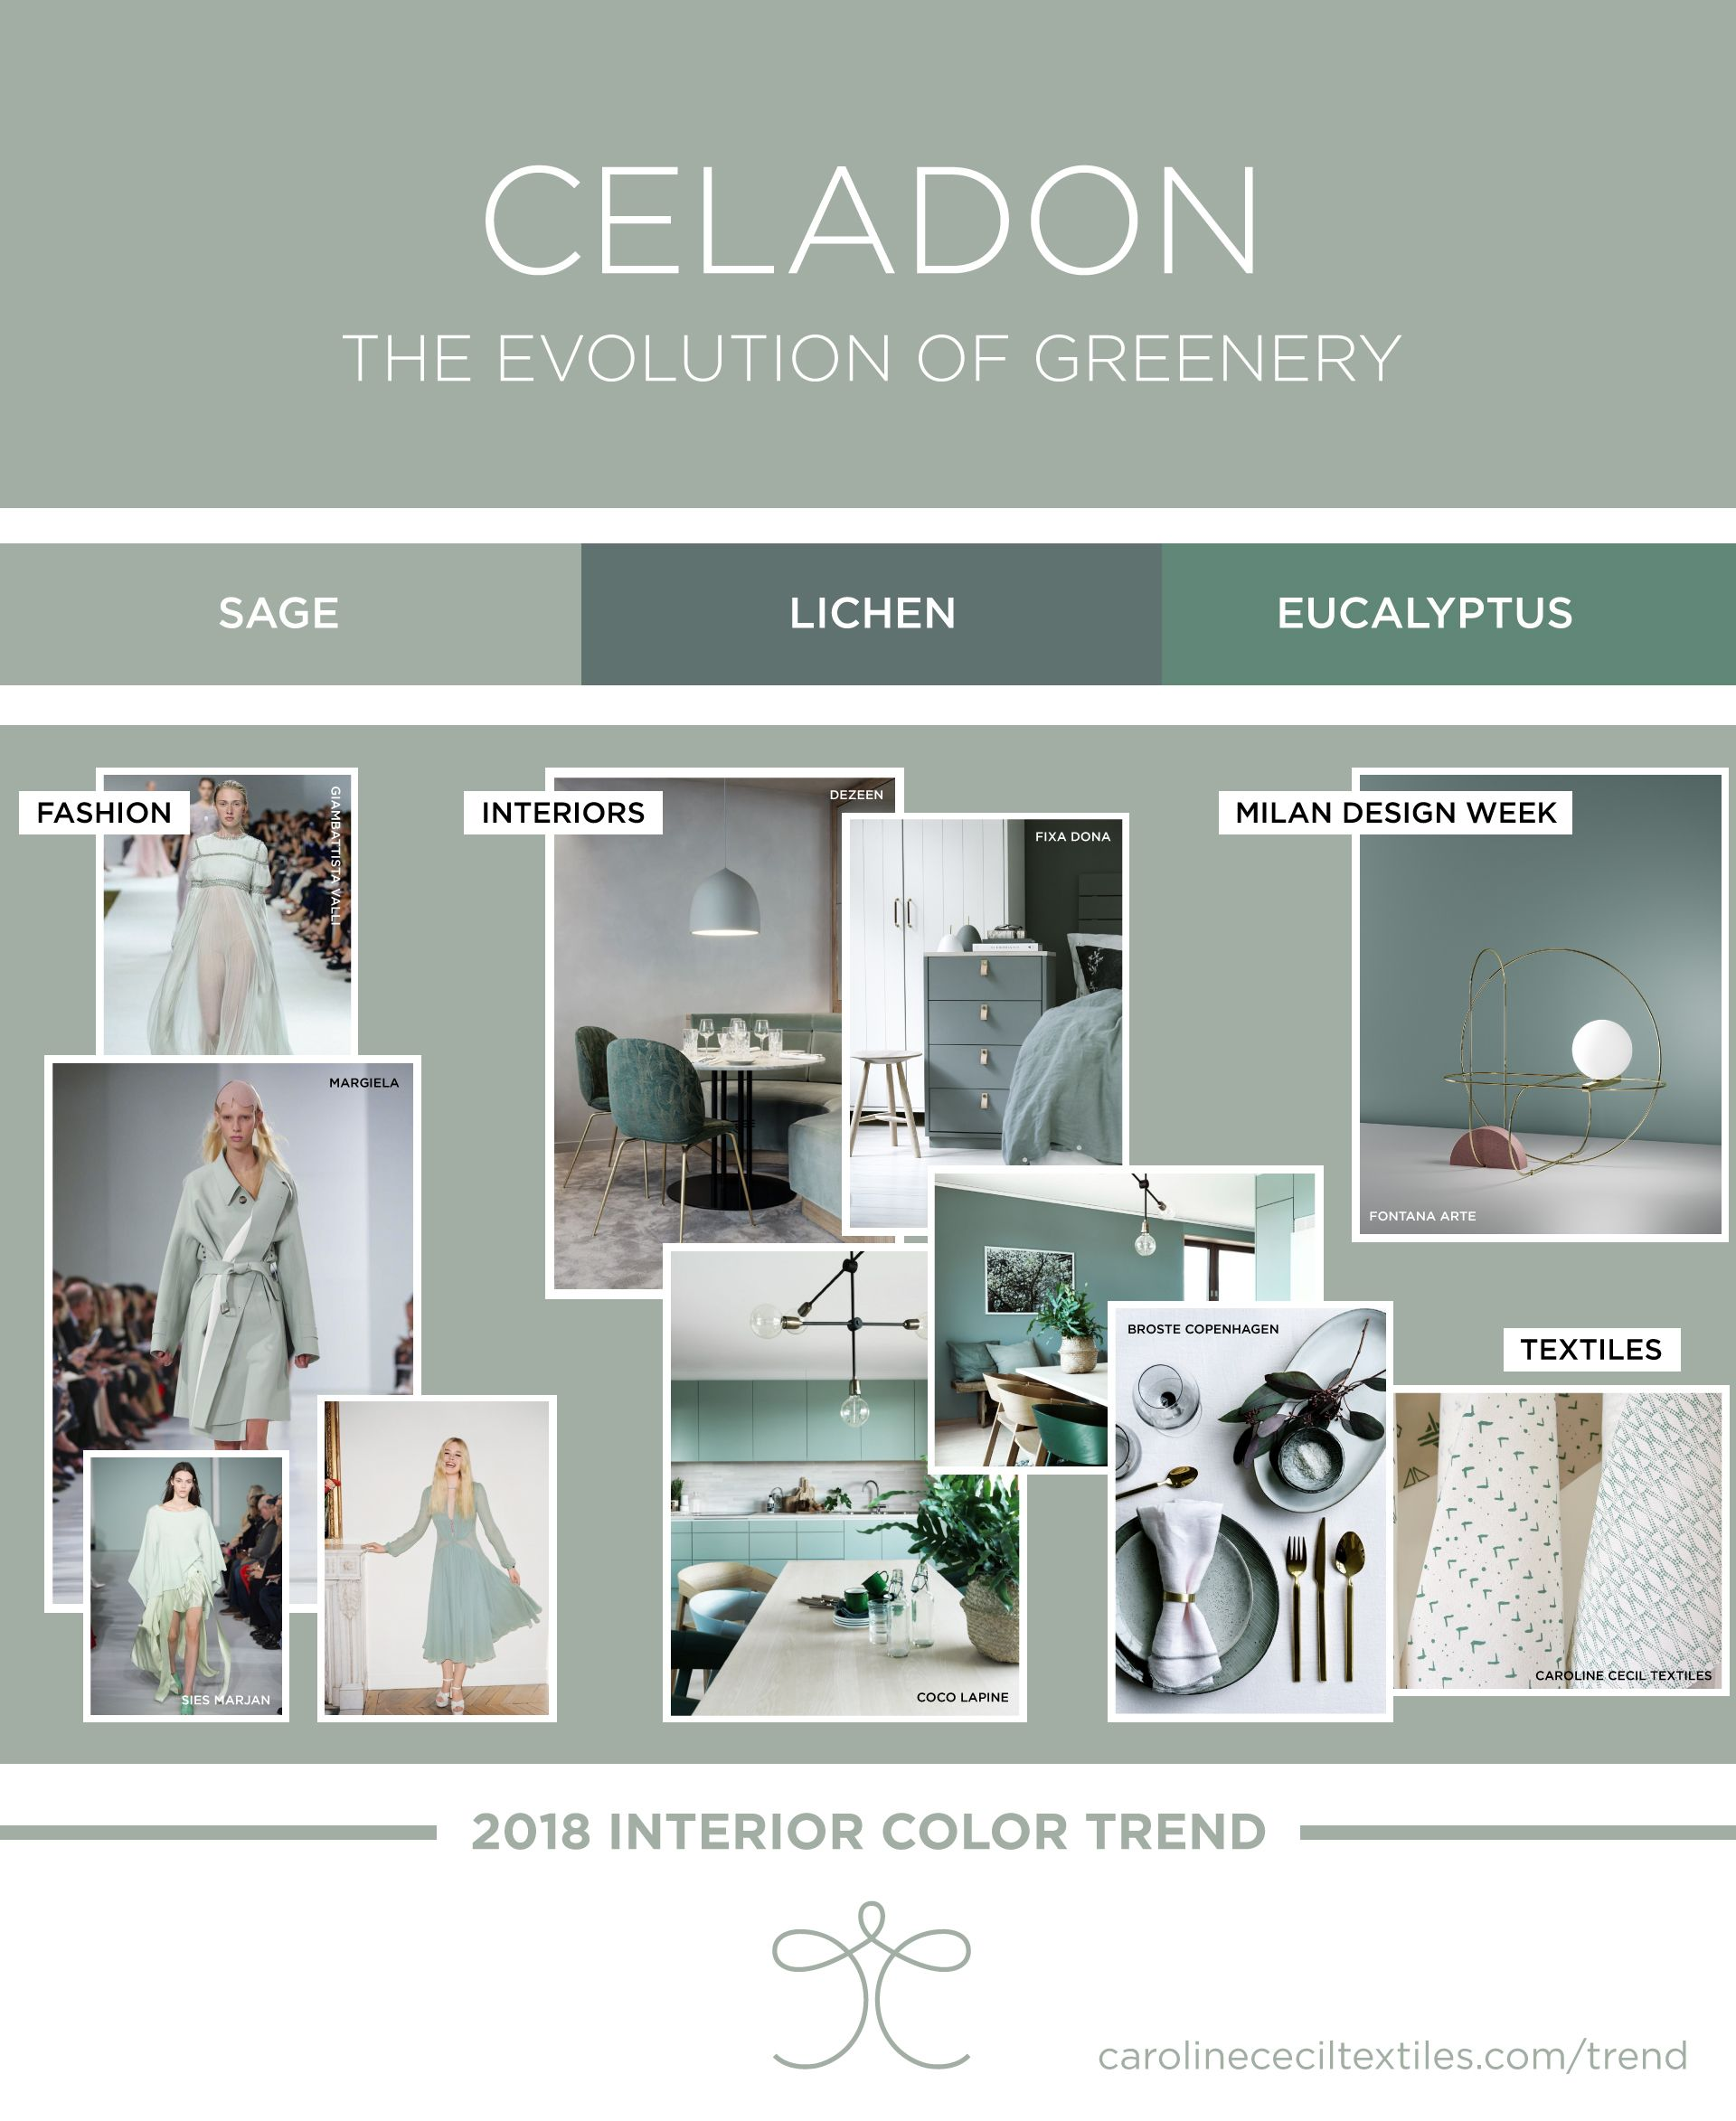 Bedroom Interior Trends 2018 Interior Color Trends 2018 Ss18 Aw18 Greenery